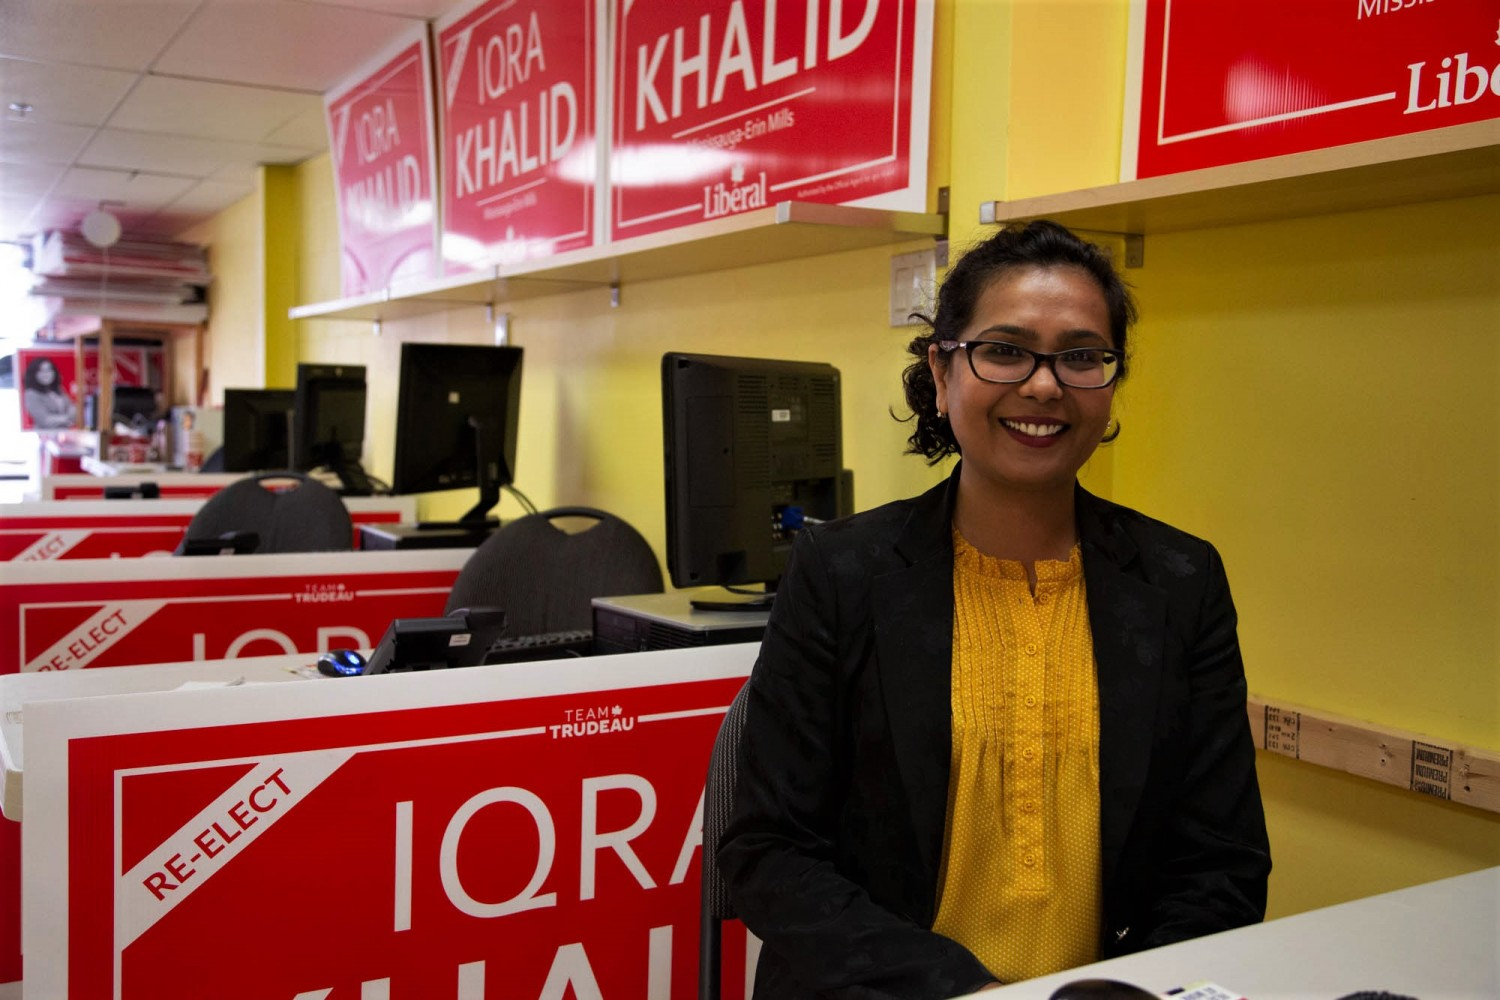 Iqra Khalid continued her fightfor equity & human rights in 43rd Parliament